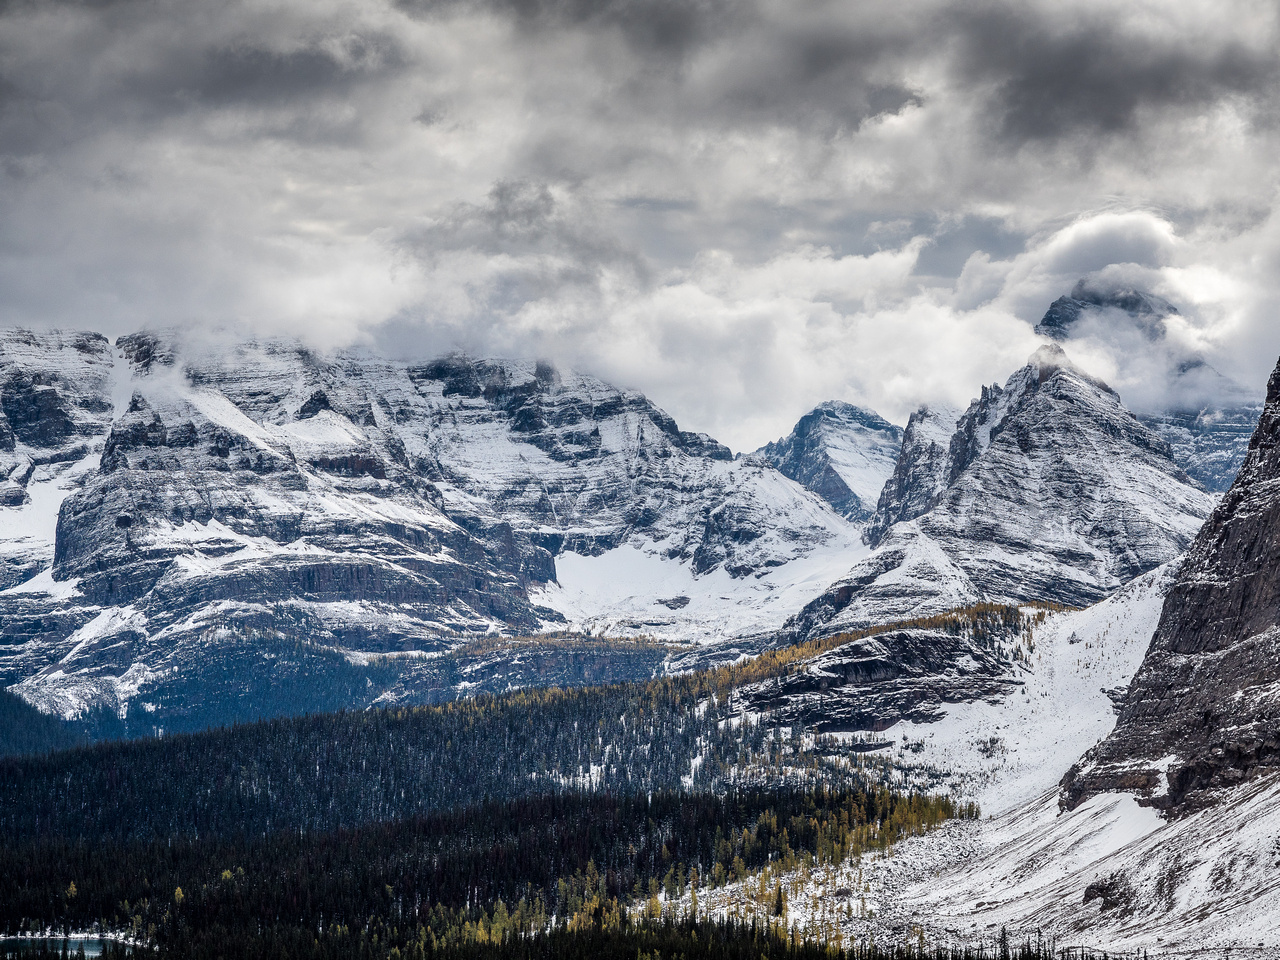 Great views back over the Lake O'Hara region from the trail as it starts to climb more steeply.